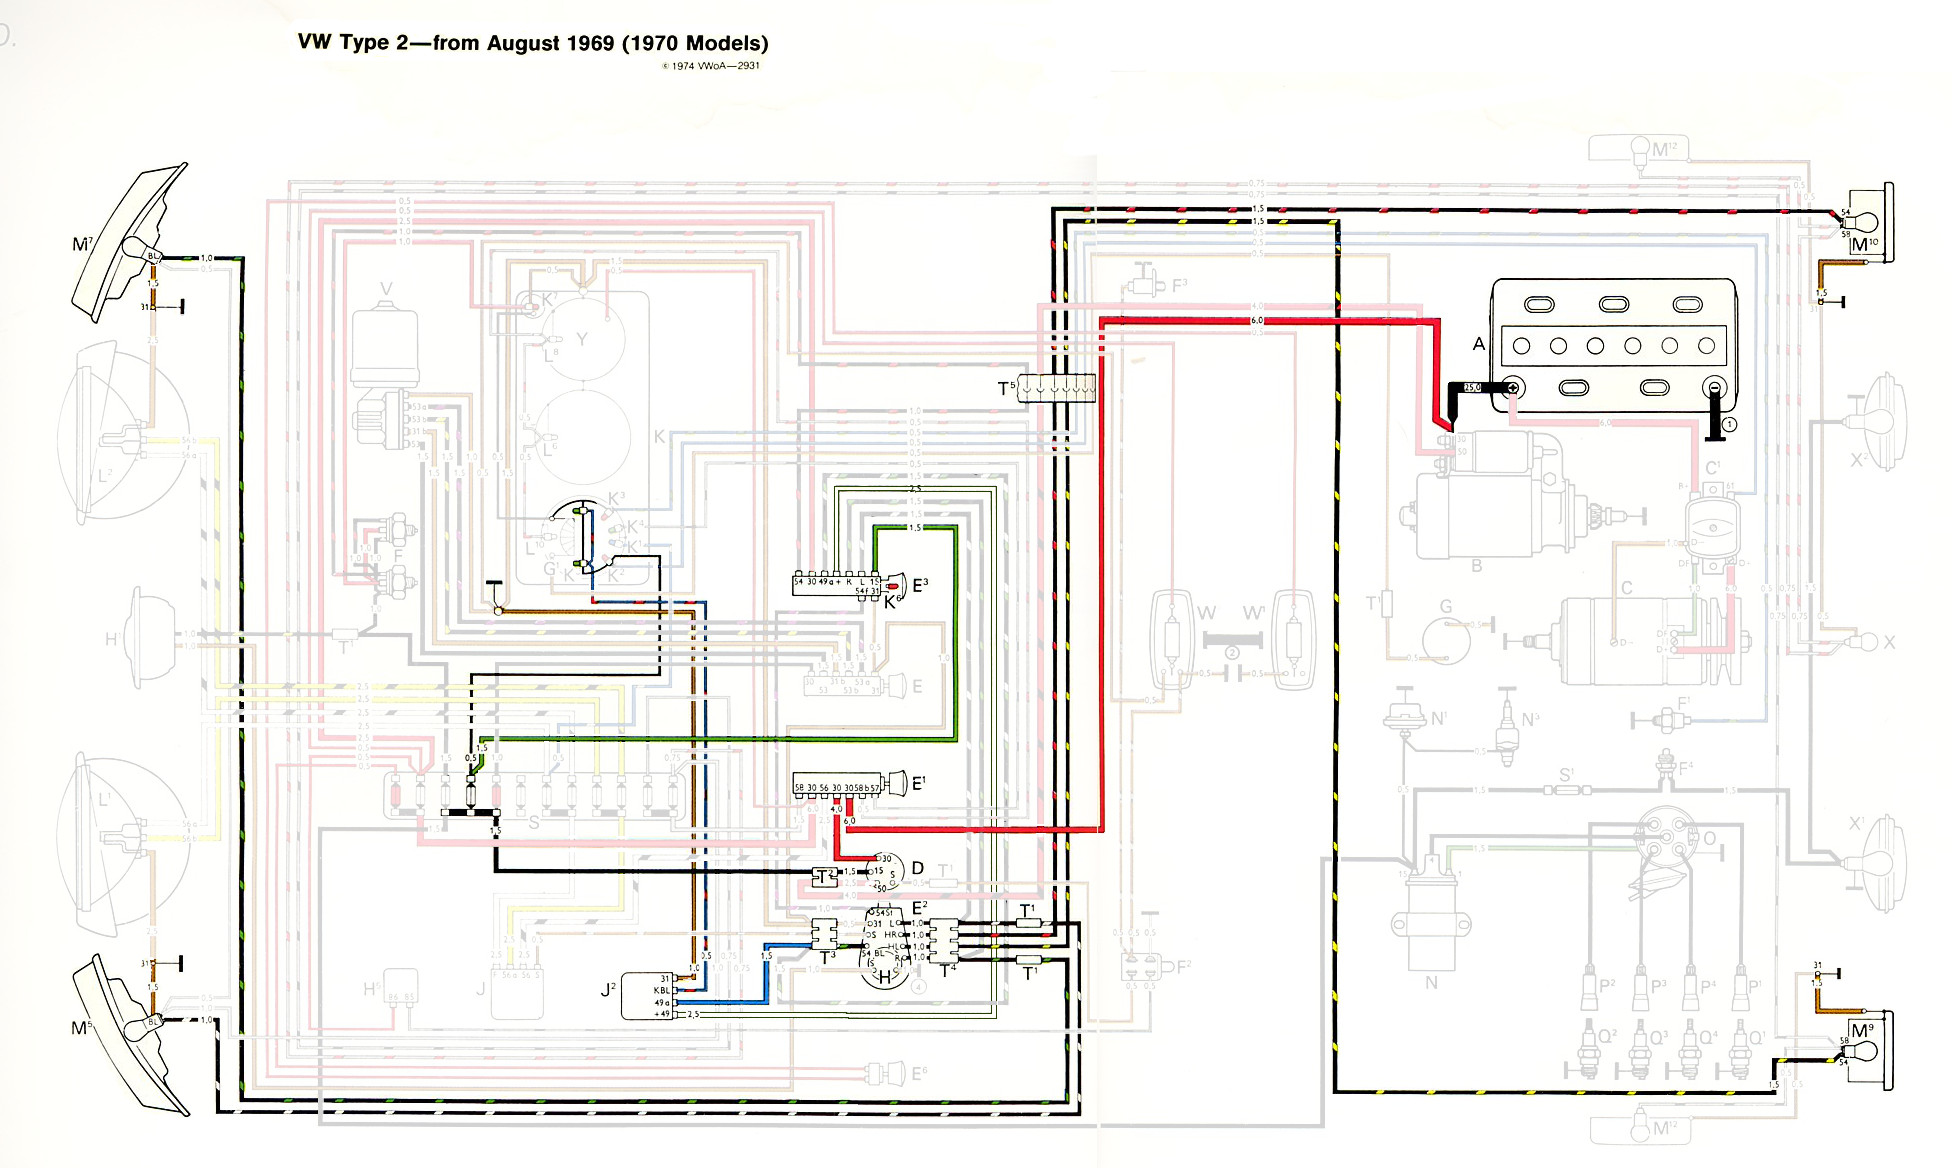 1970bus_signals 1970 vw beetle wiring diagram 1967 vw beetle wiring diagram Wiring Harness Diagram at fashall.co